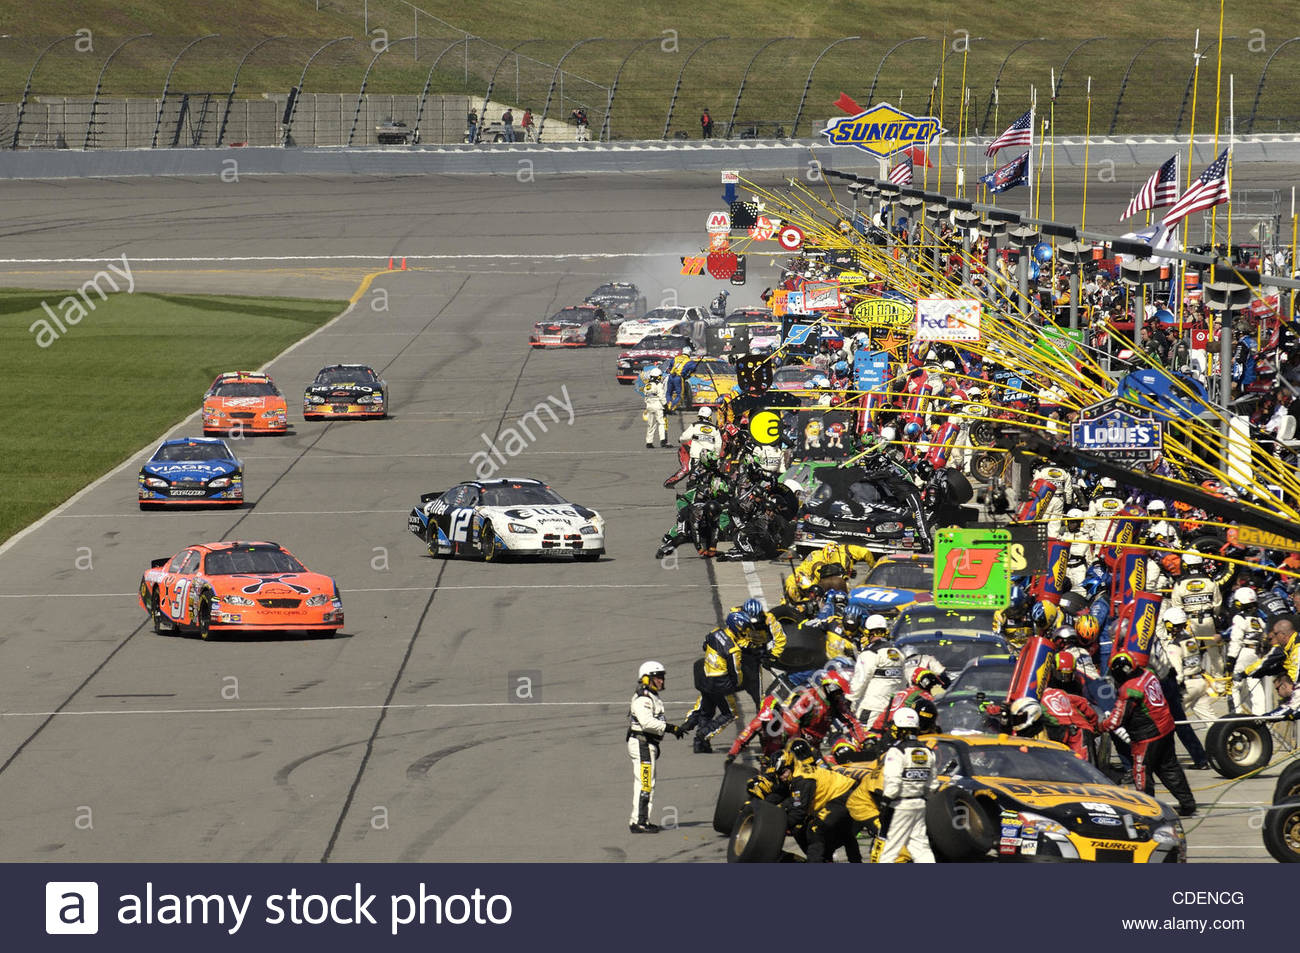 oct 09 2005 kansas city kansas usa auto racing stock photo